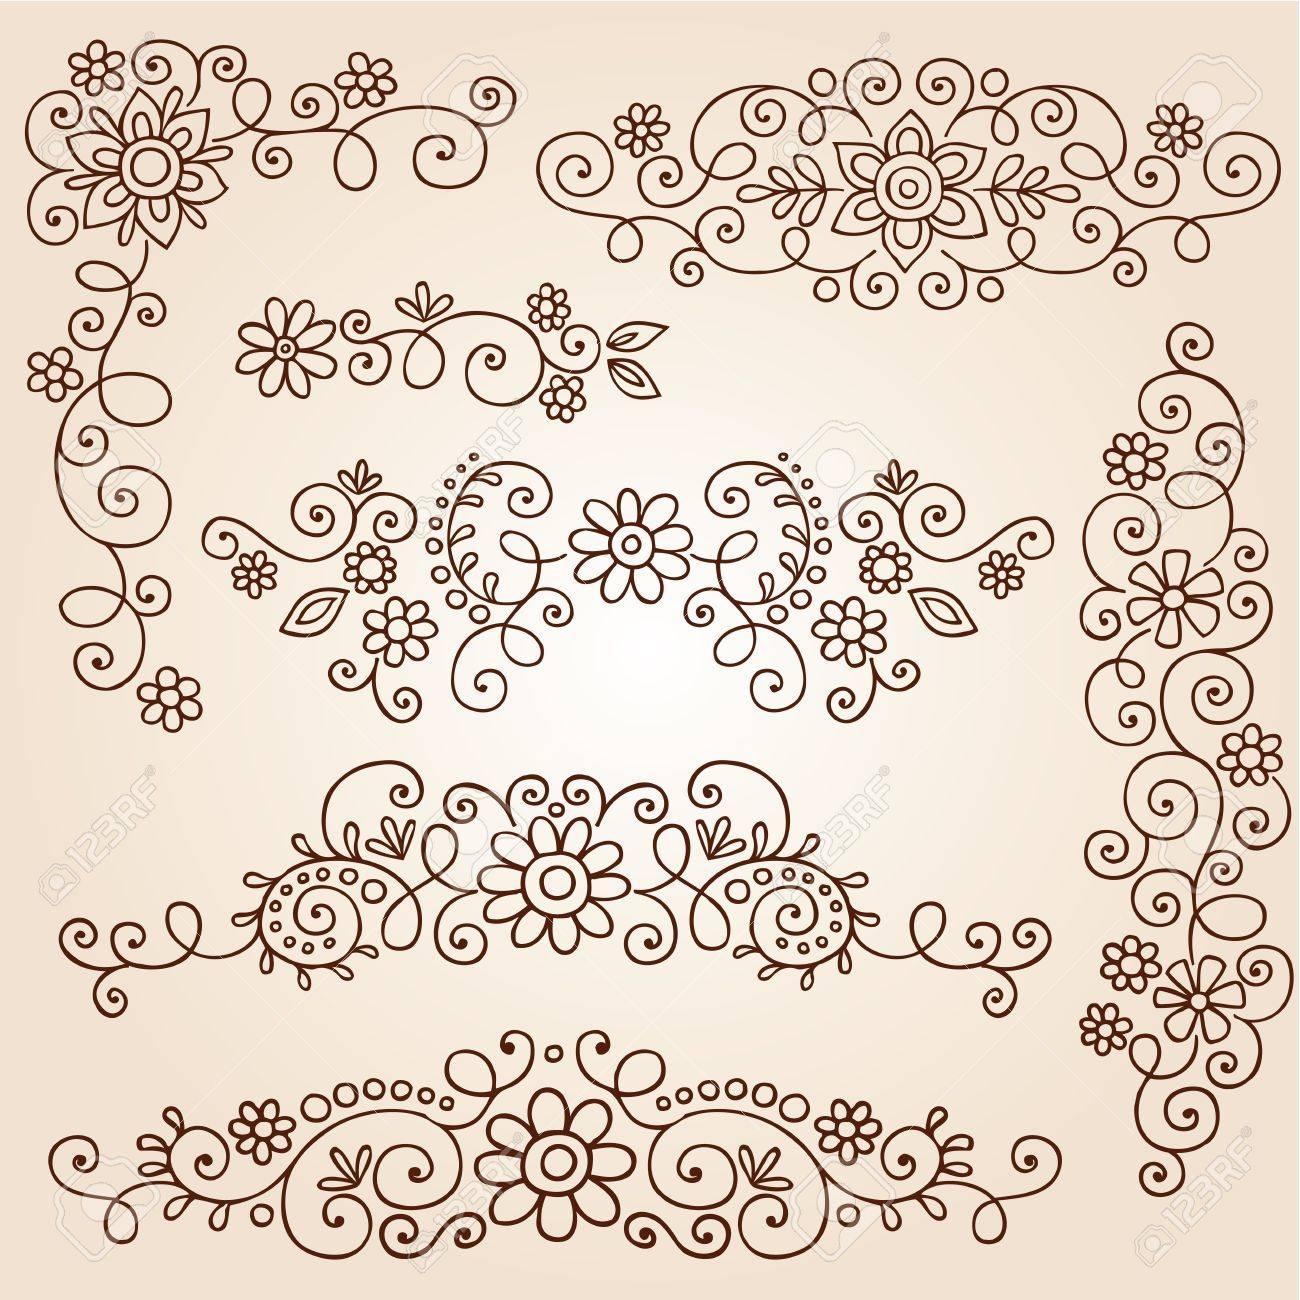 Henna Paisley Vines And Flowers Mehndi Tattoo Doodles Royalty Free